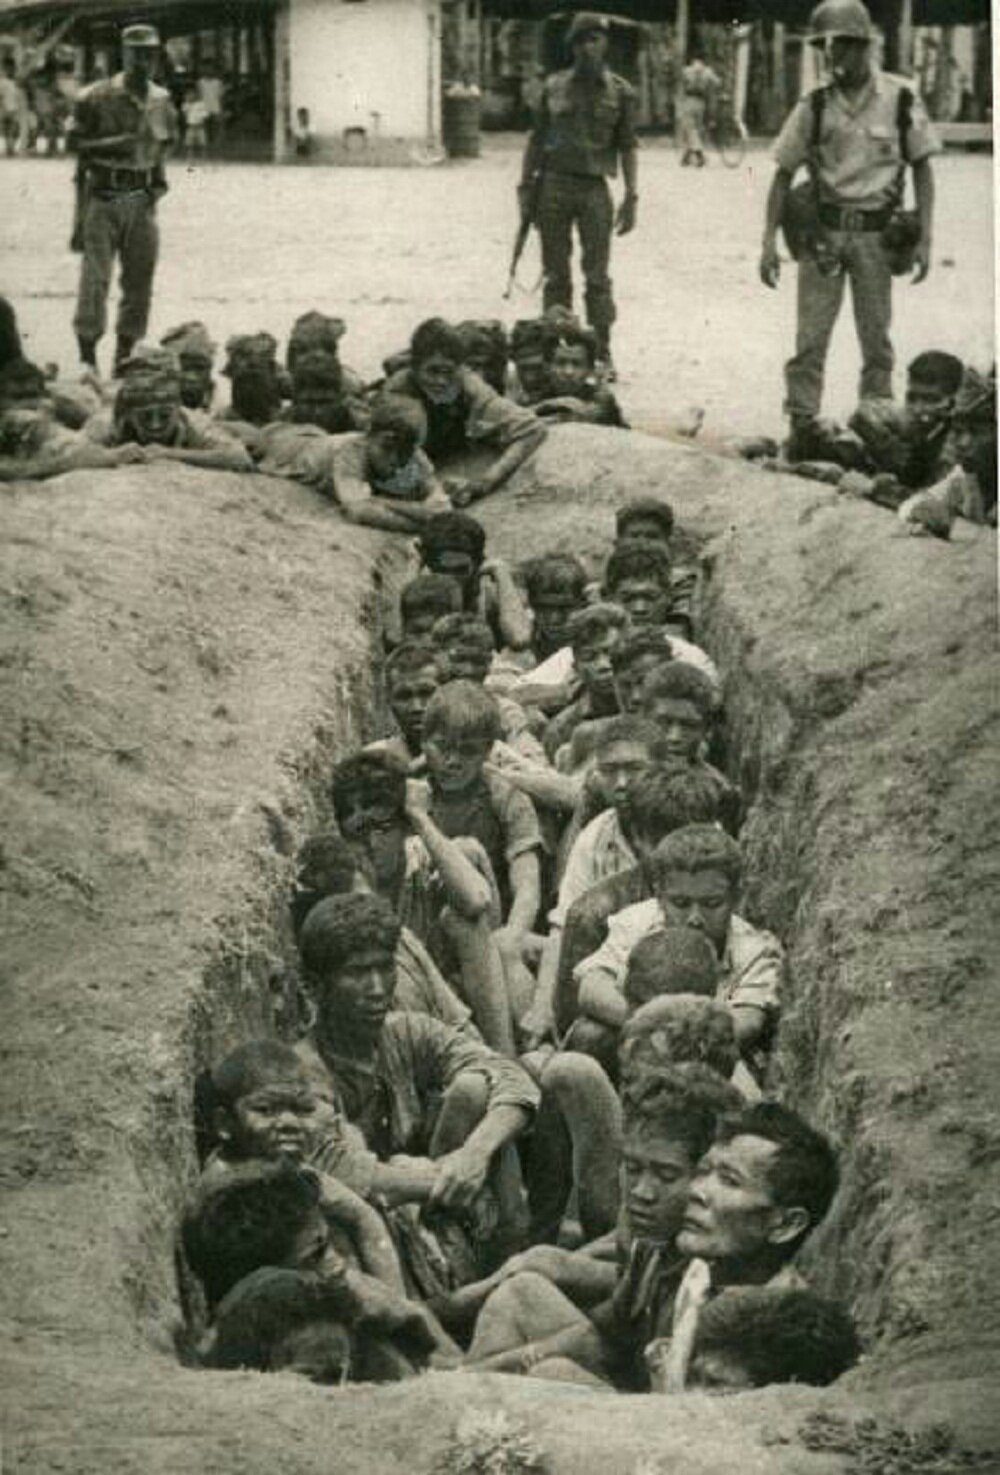 Image Victims of the Indonesian Genocide were thrown in mass graves or into rivers (1965).